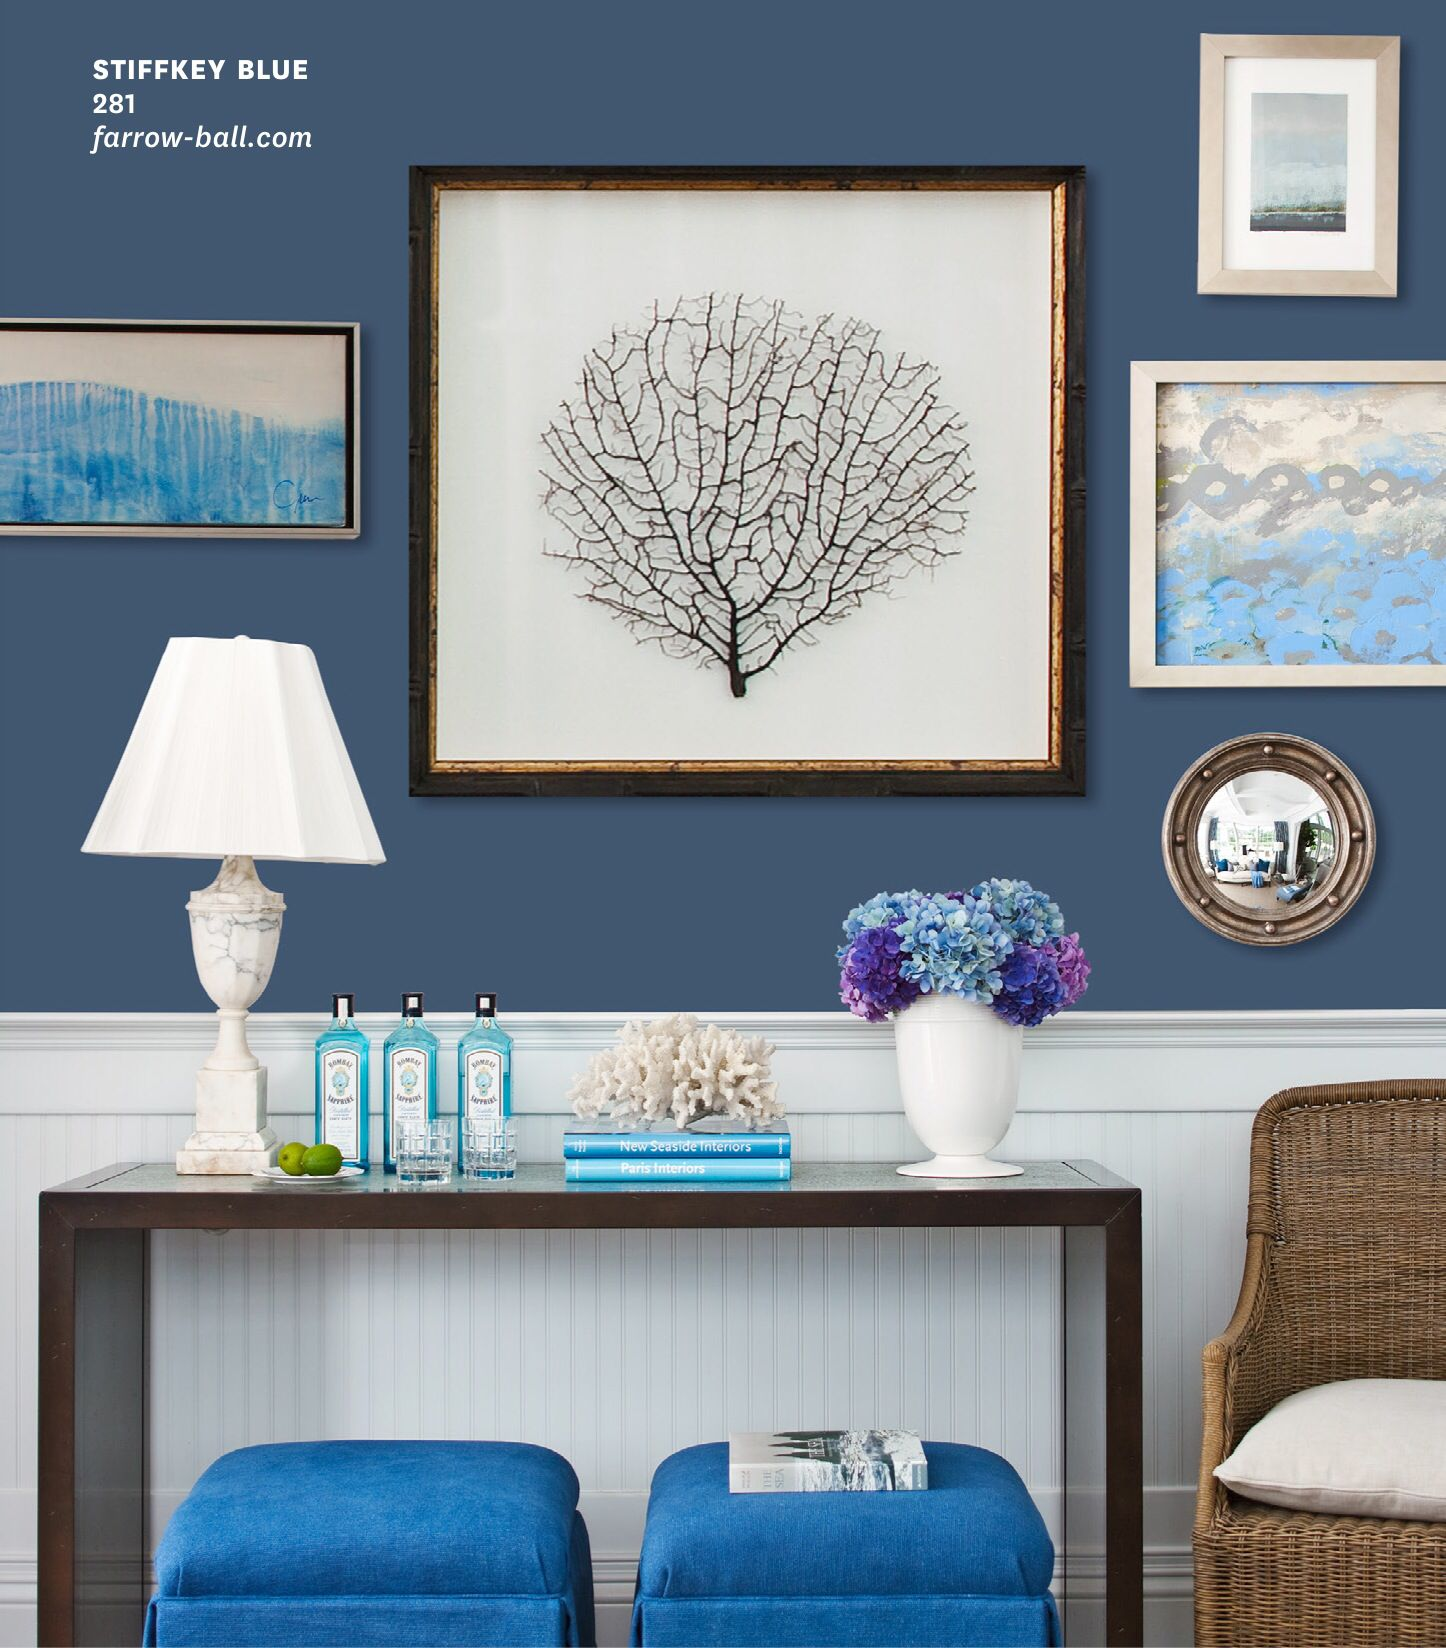 Bhg August 2014  Stiffkey Blue 281 Farrow Ballcom